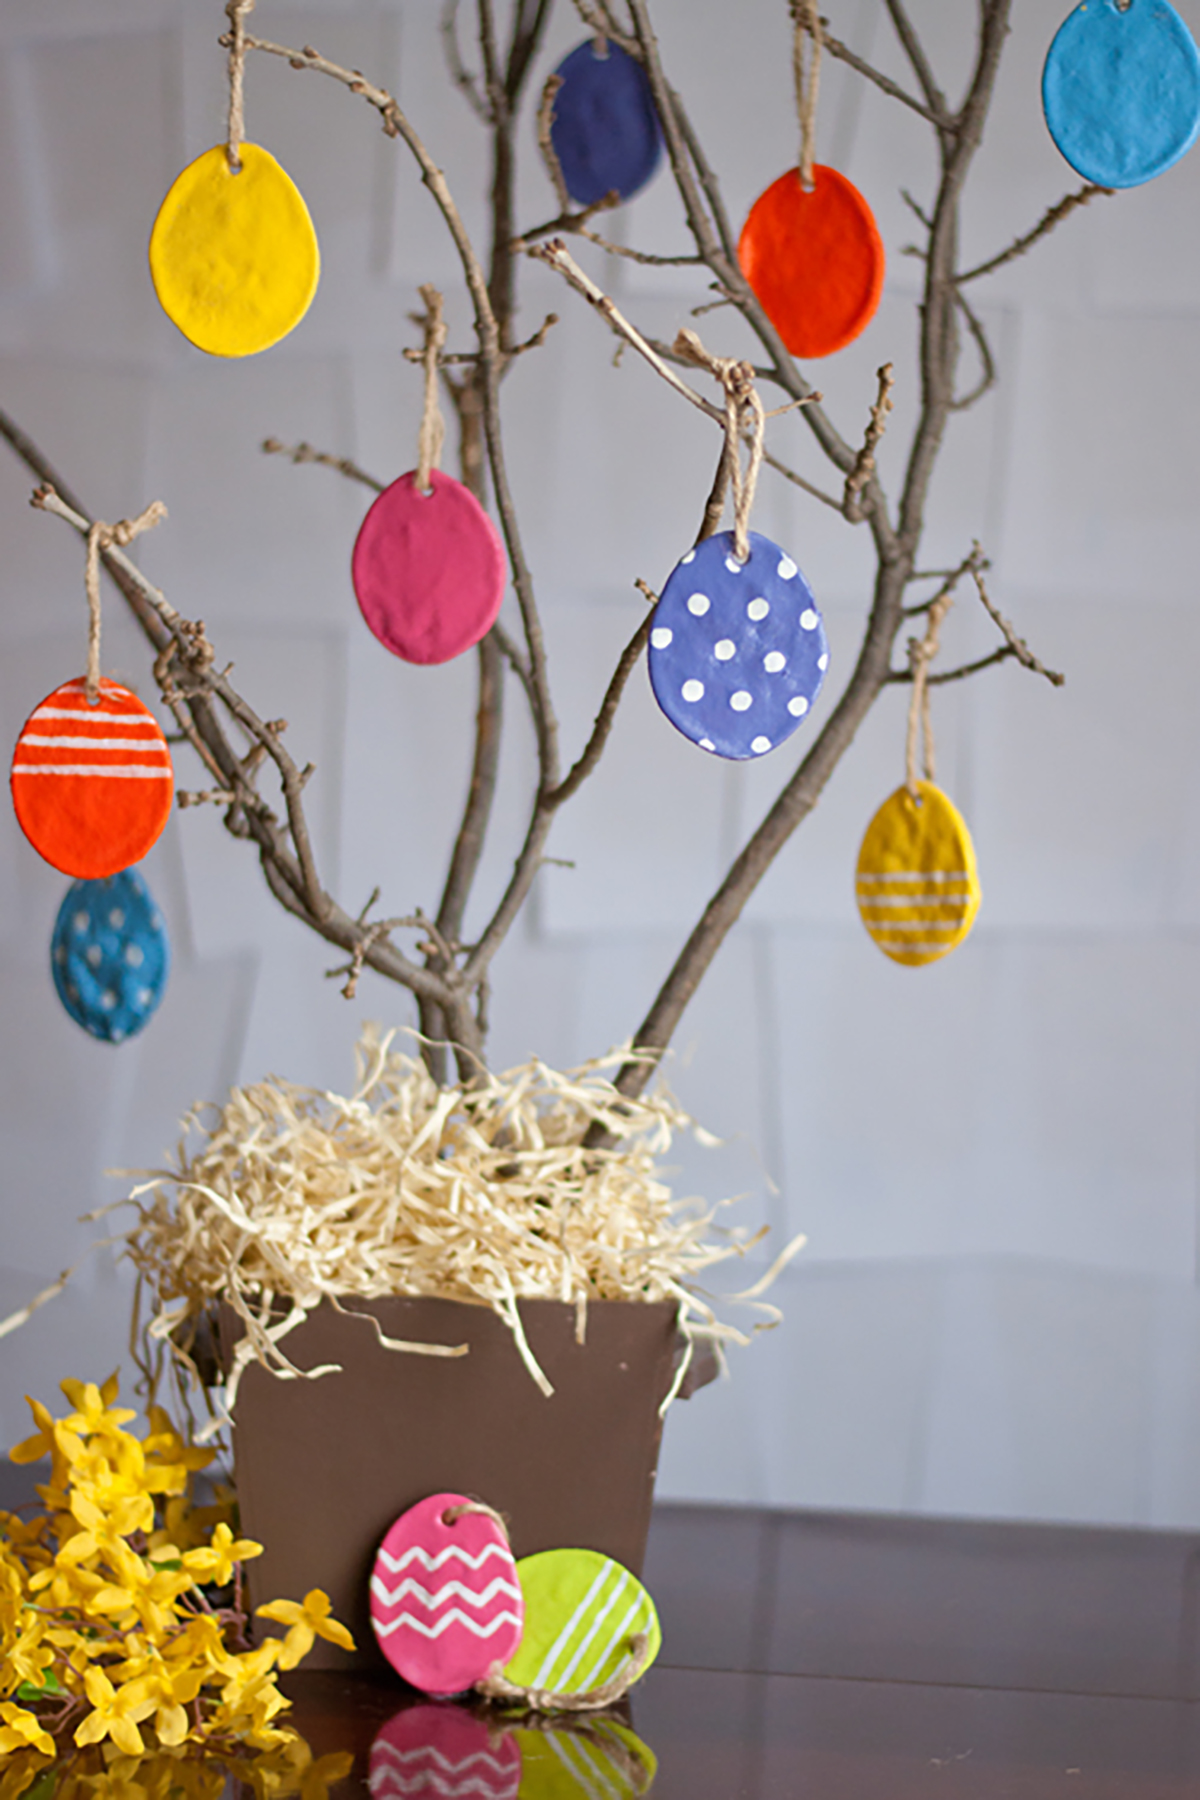 Easter Decorating Ideas For Kids 60 easy easter crafts - ideas for easter diy decorations & gifts